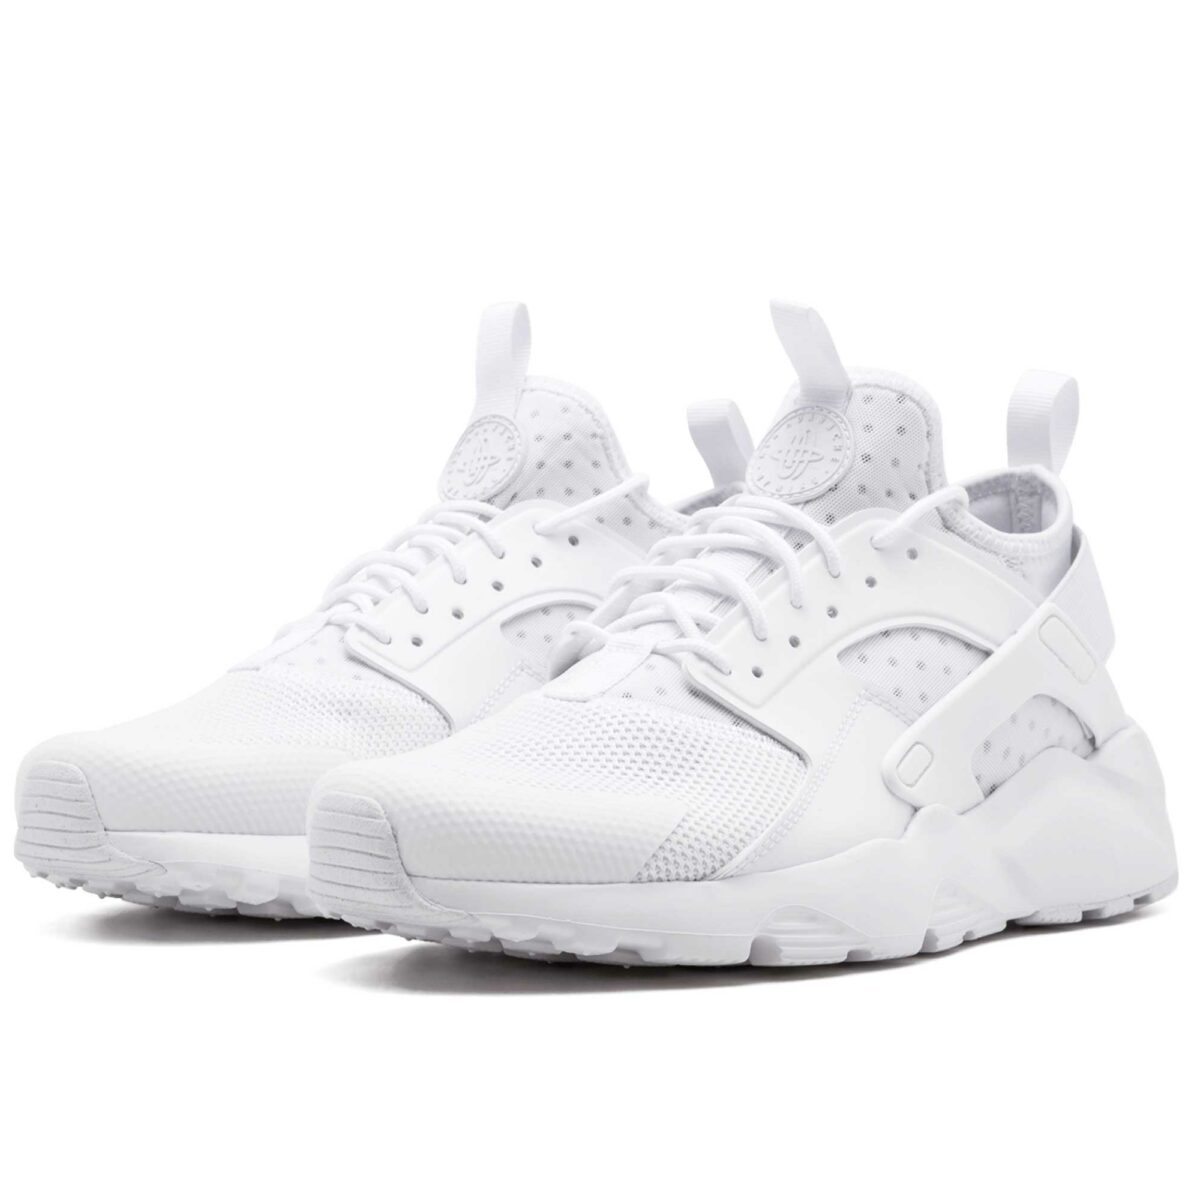 nike air huarache run ultra white 819685_101 купить